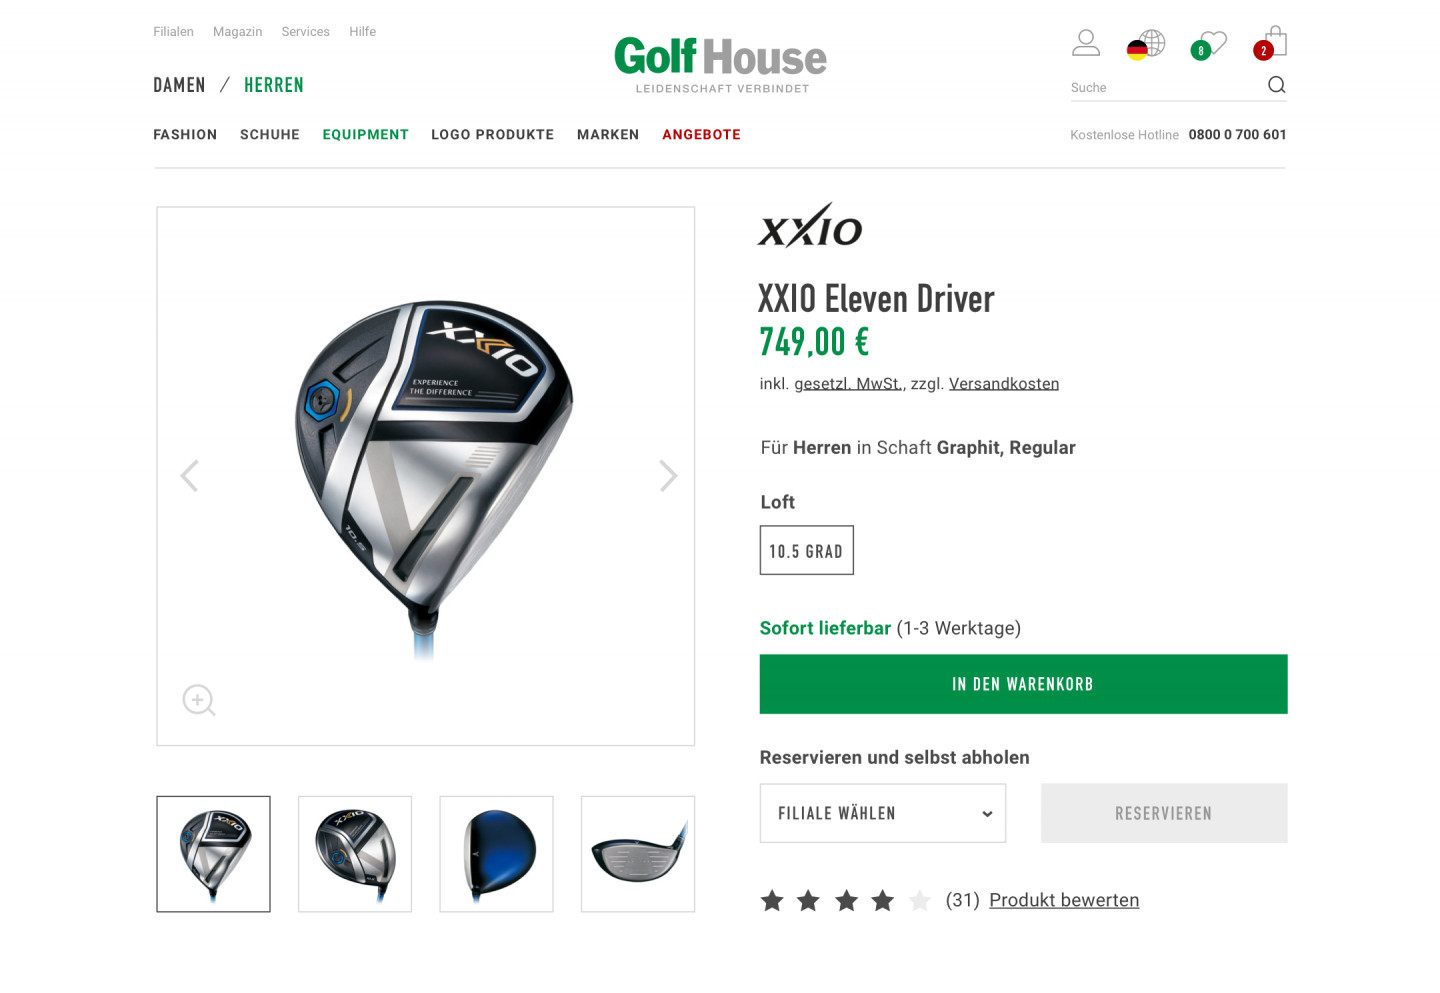 A product page in the Golf House E-Commerce